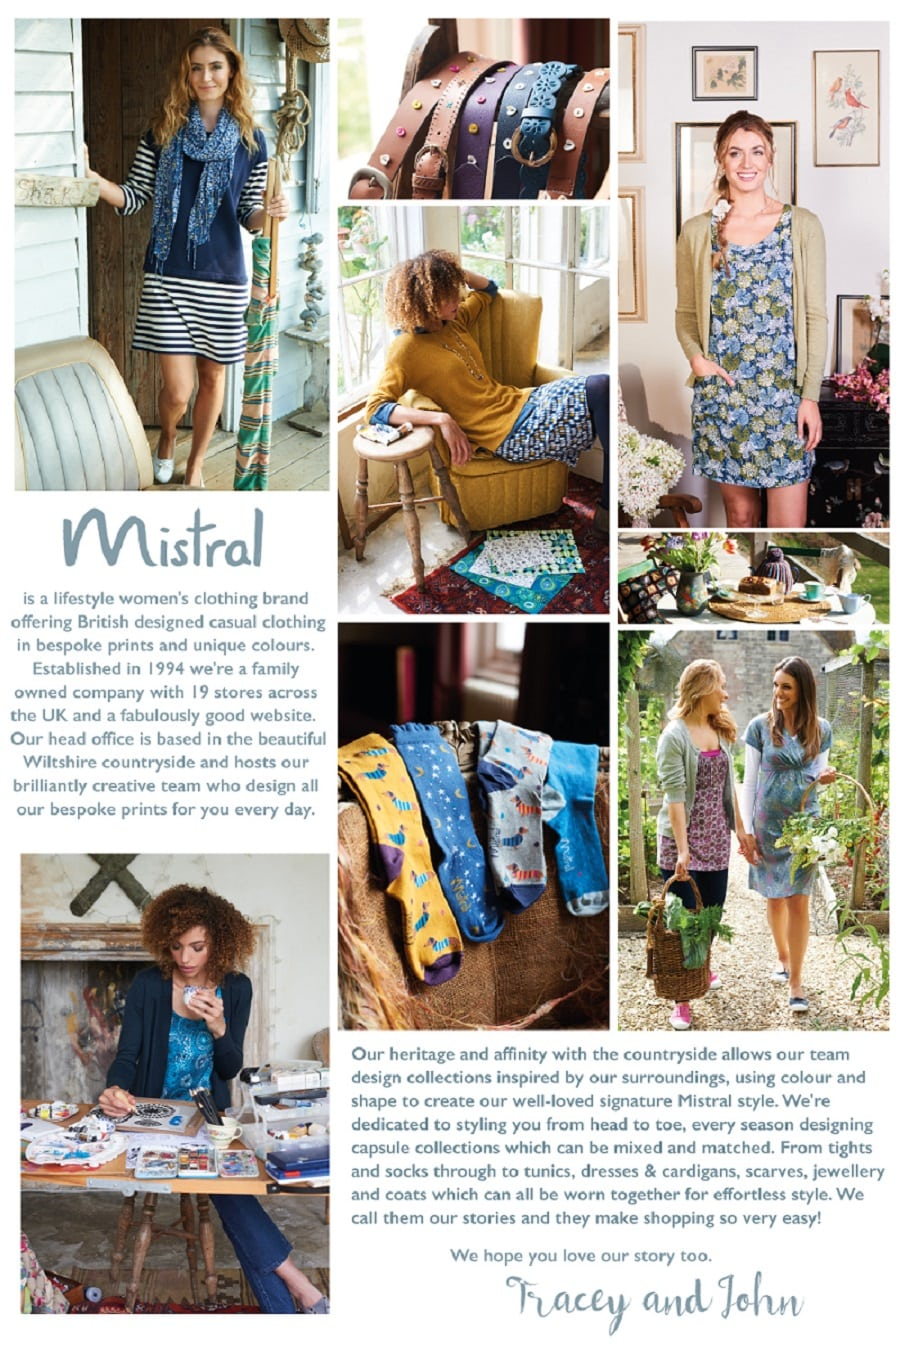 Textiles placement at Mistral